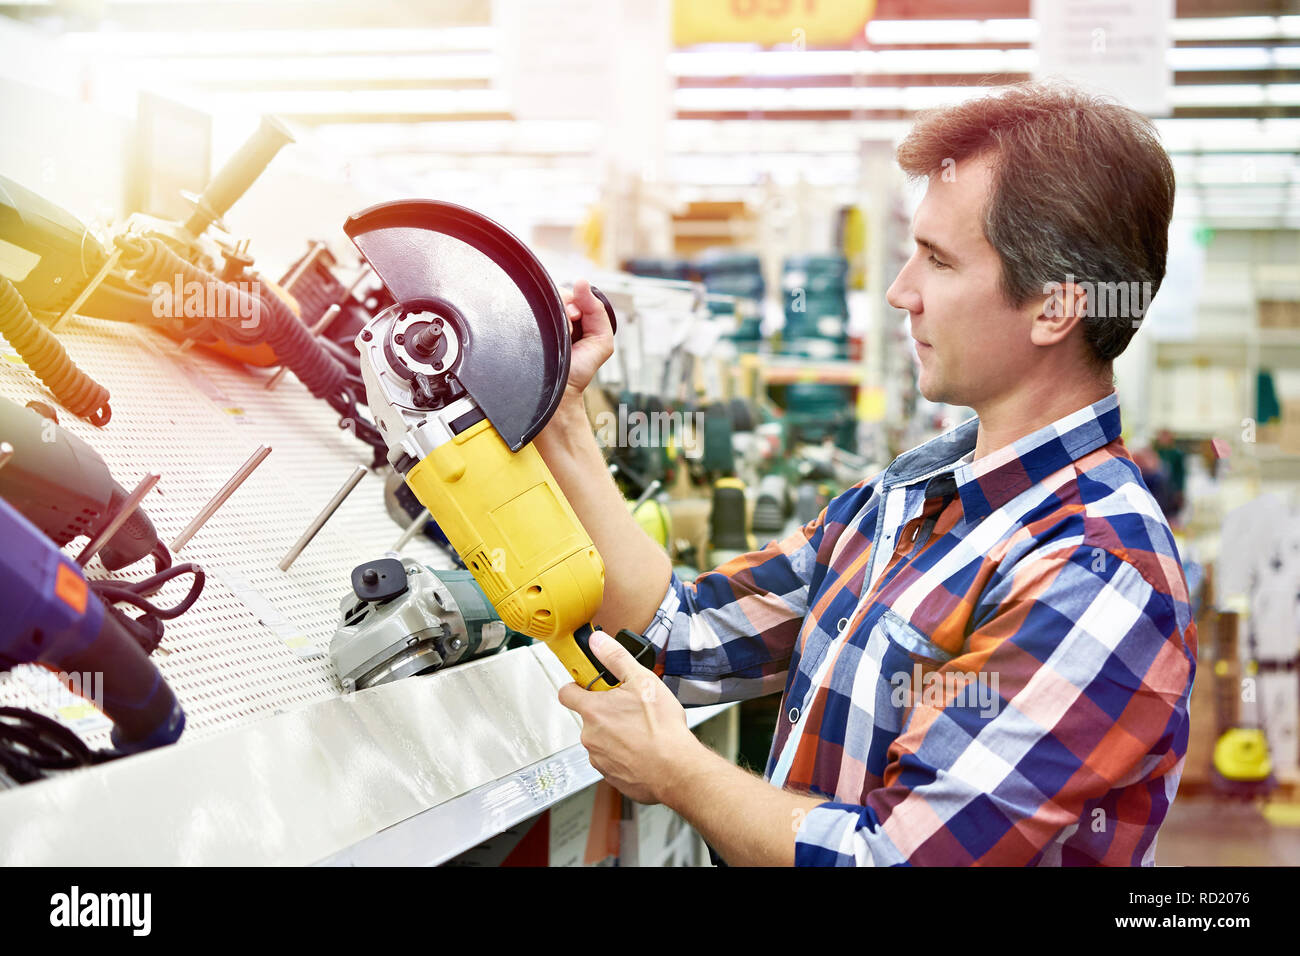 Man shopping for angle grinder in hardware store close-up - Stock Image